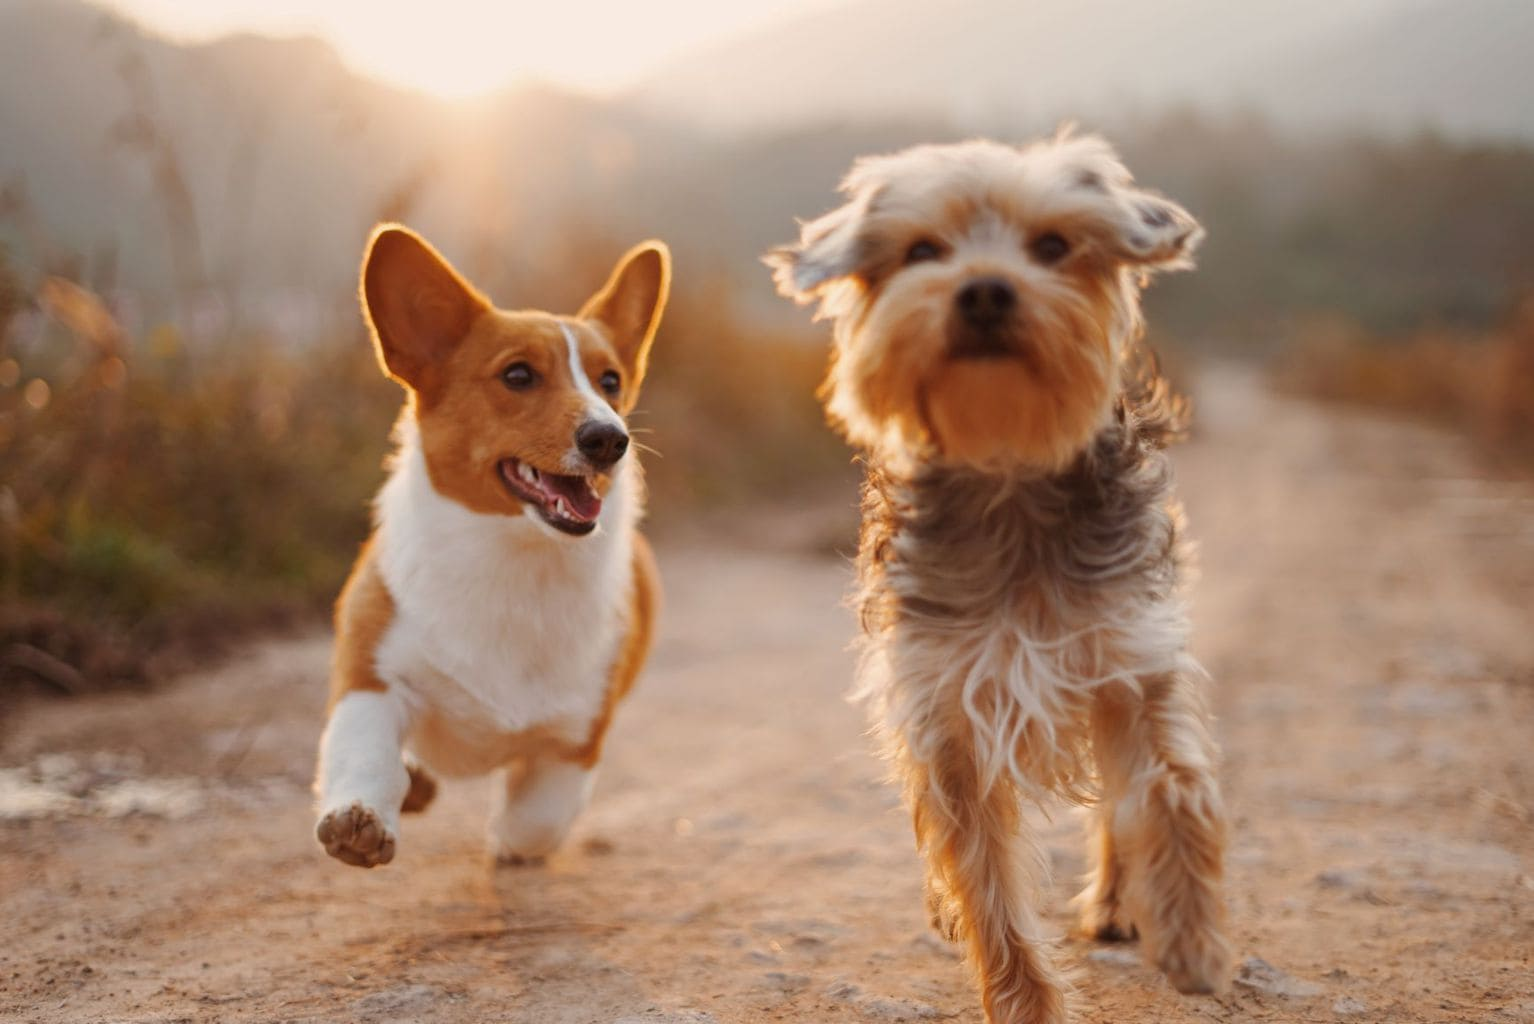 Dog hashtags - two dogs playing